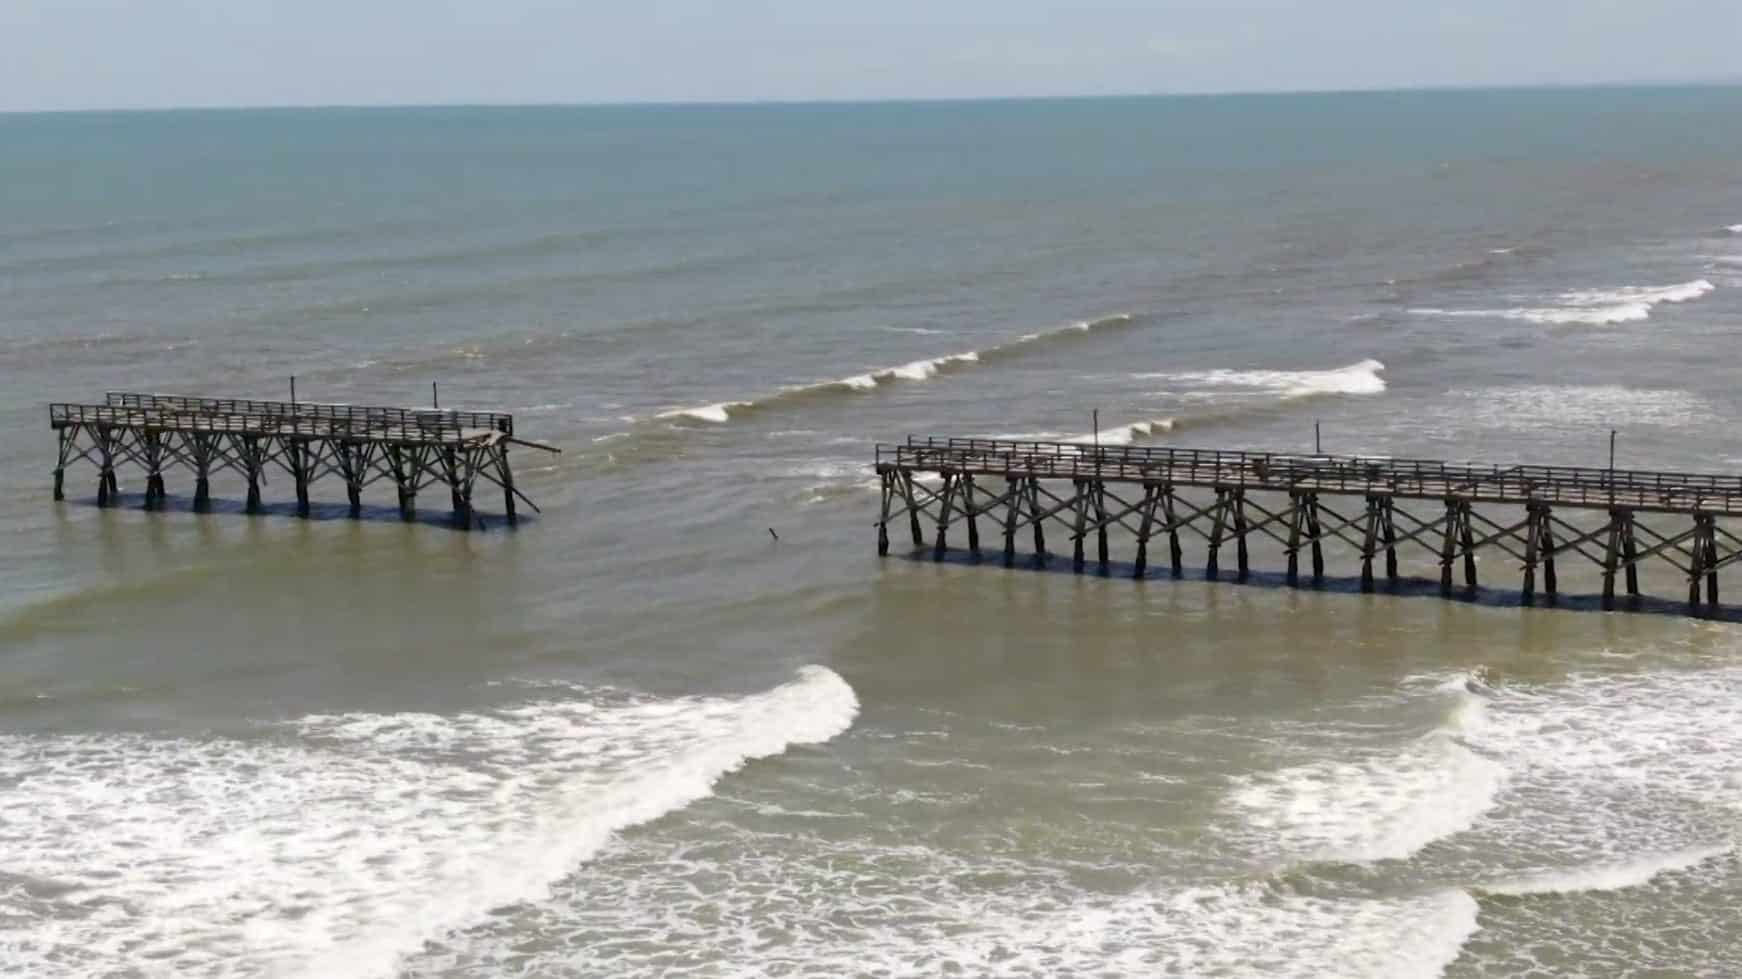 Drone video shows damaged Sea Cabin Pier in Cherry Grove